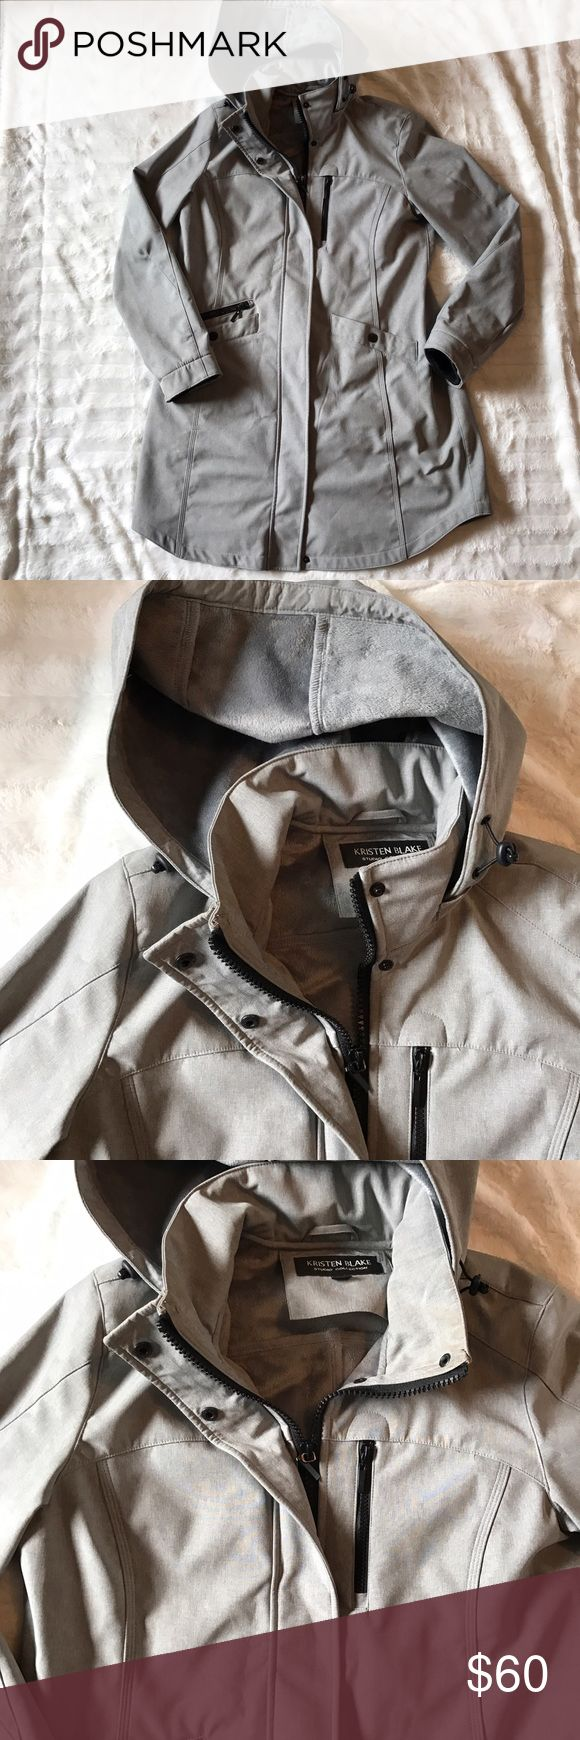 "Kristen Blake Cross Due Soft Shell  Hooded Jacket Size large Perfect condition Smoke pet free home  Color gray Inside lined with soft Faux Fur material  Length 35.5"" Pit to pit 22"" Kristen Blake Jackets & Coats"